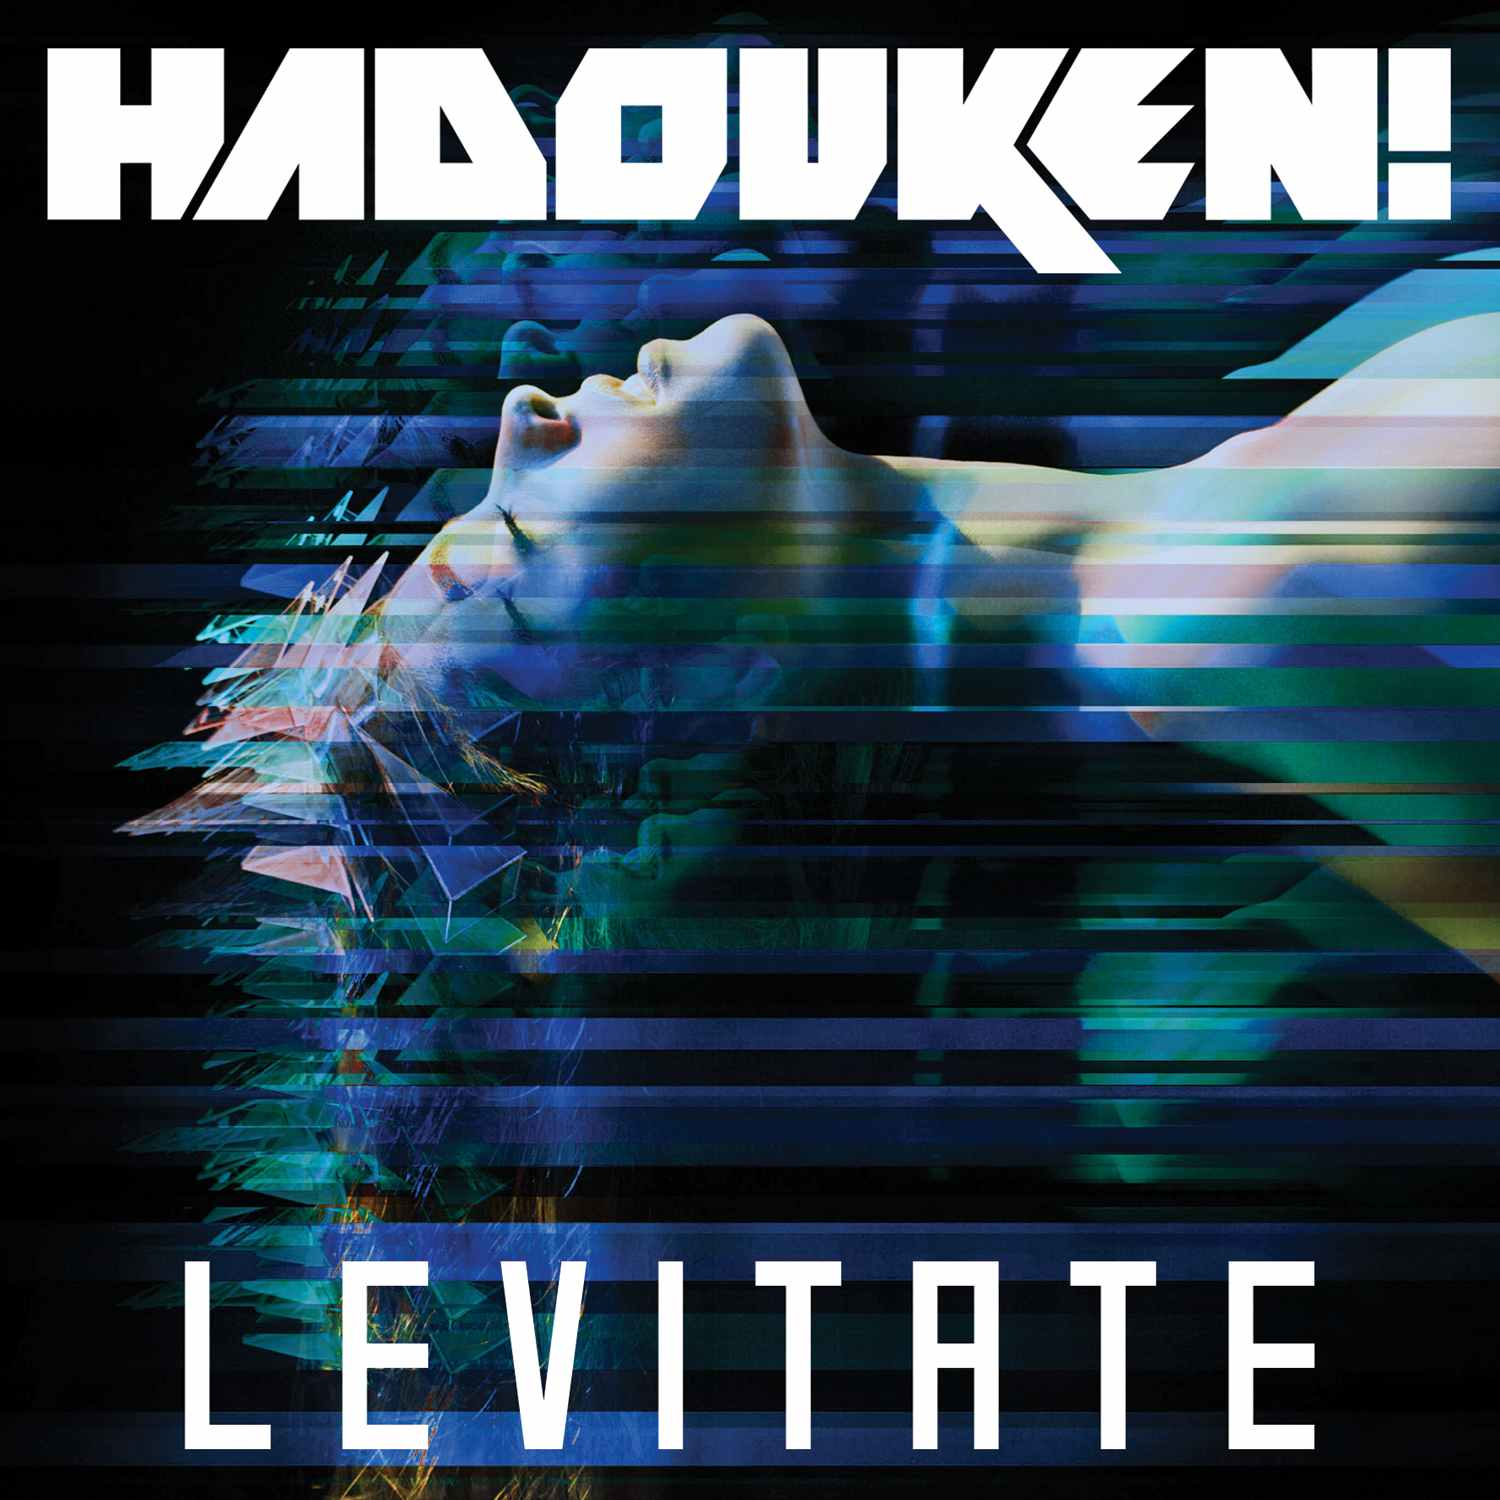 hadouken-levitate-artwork.jpeg